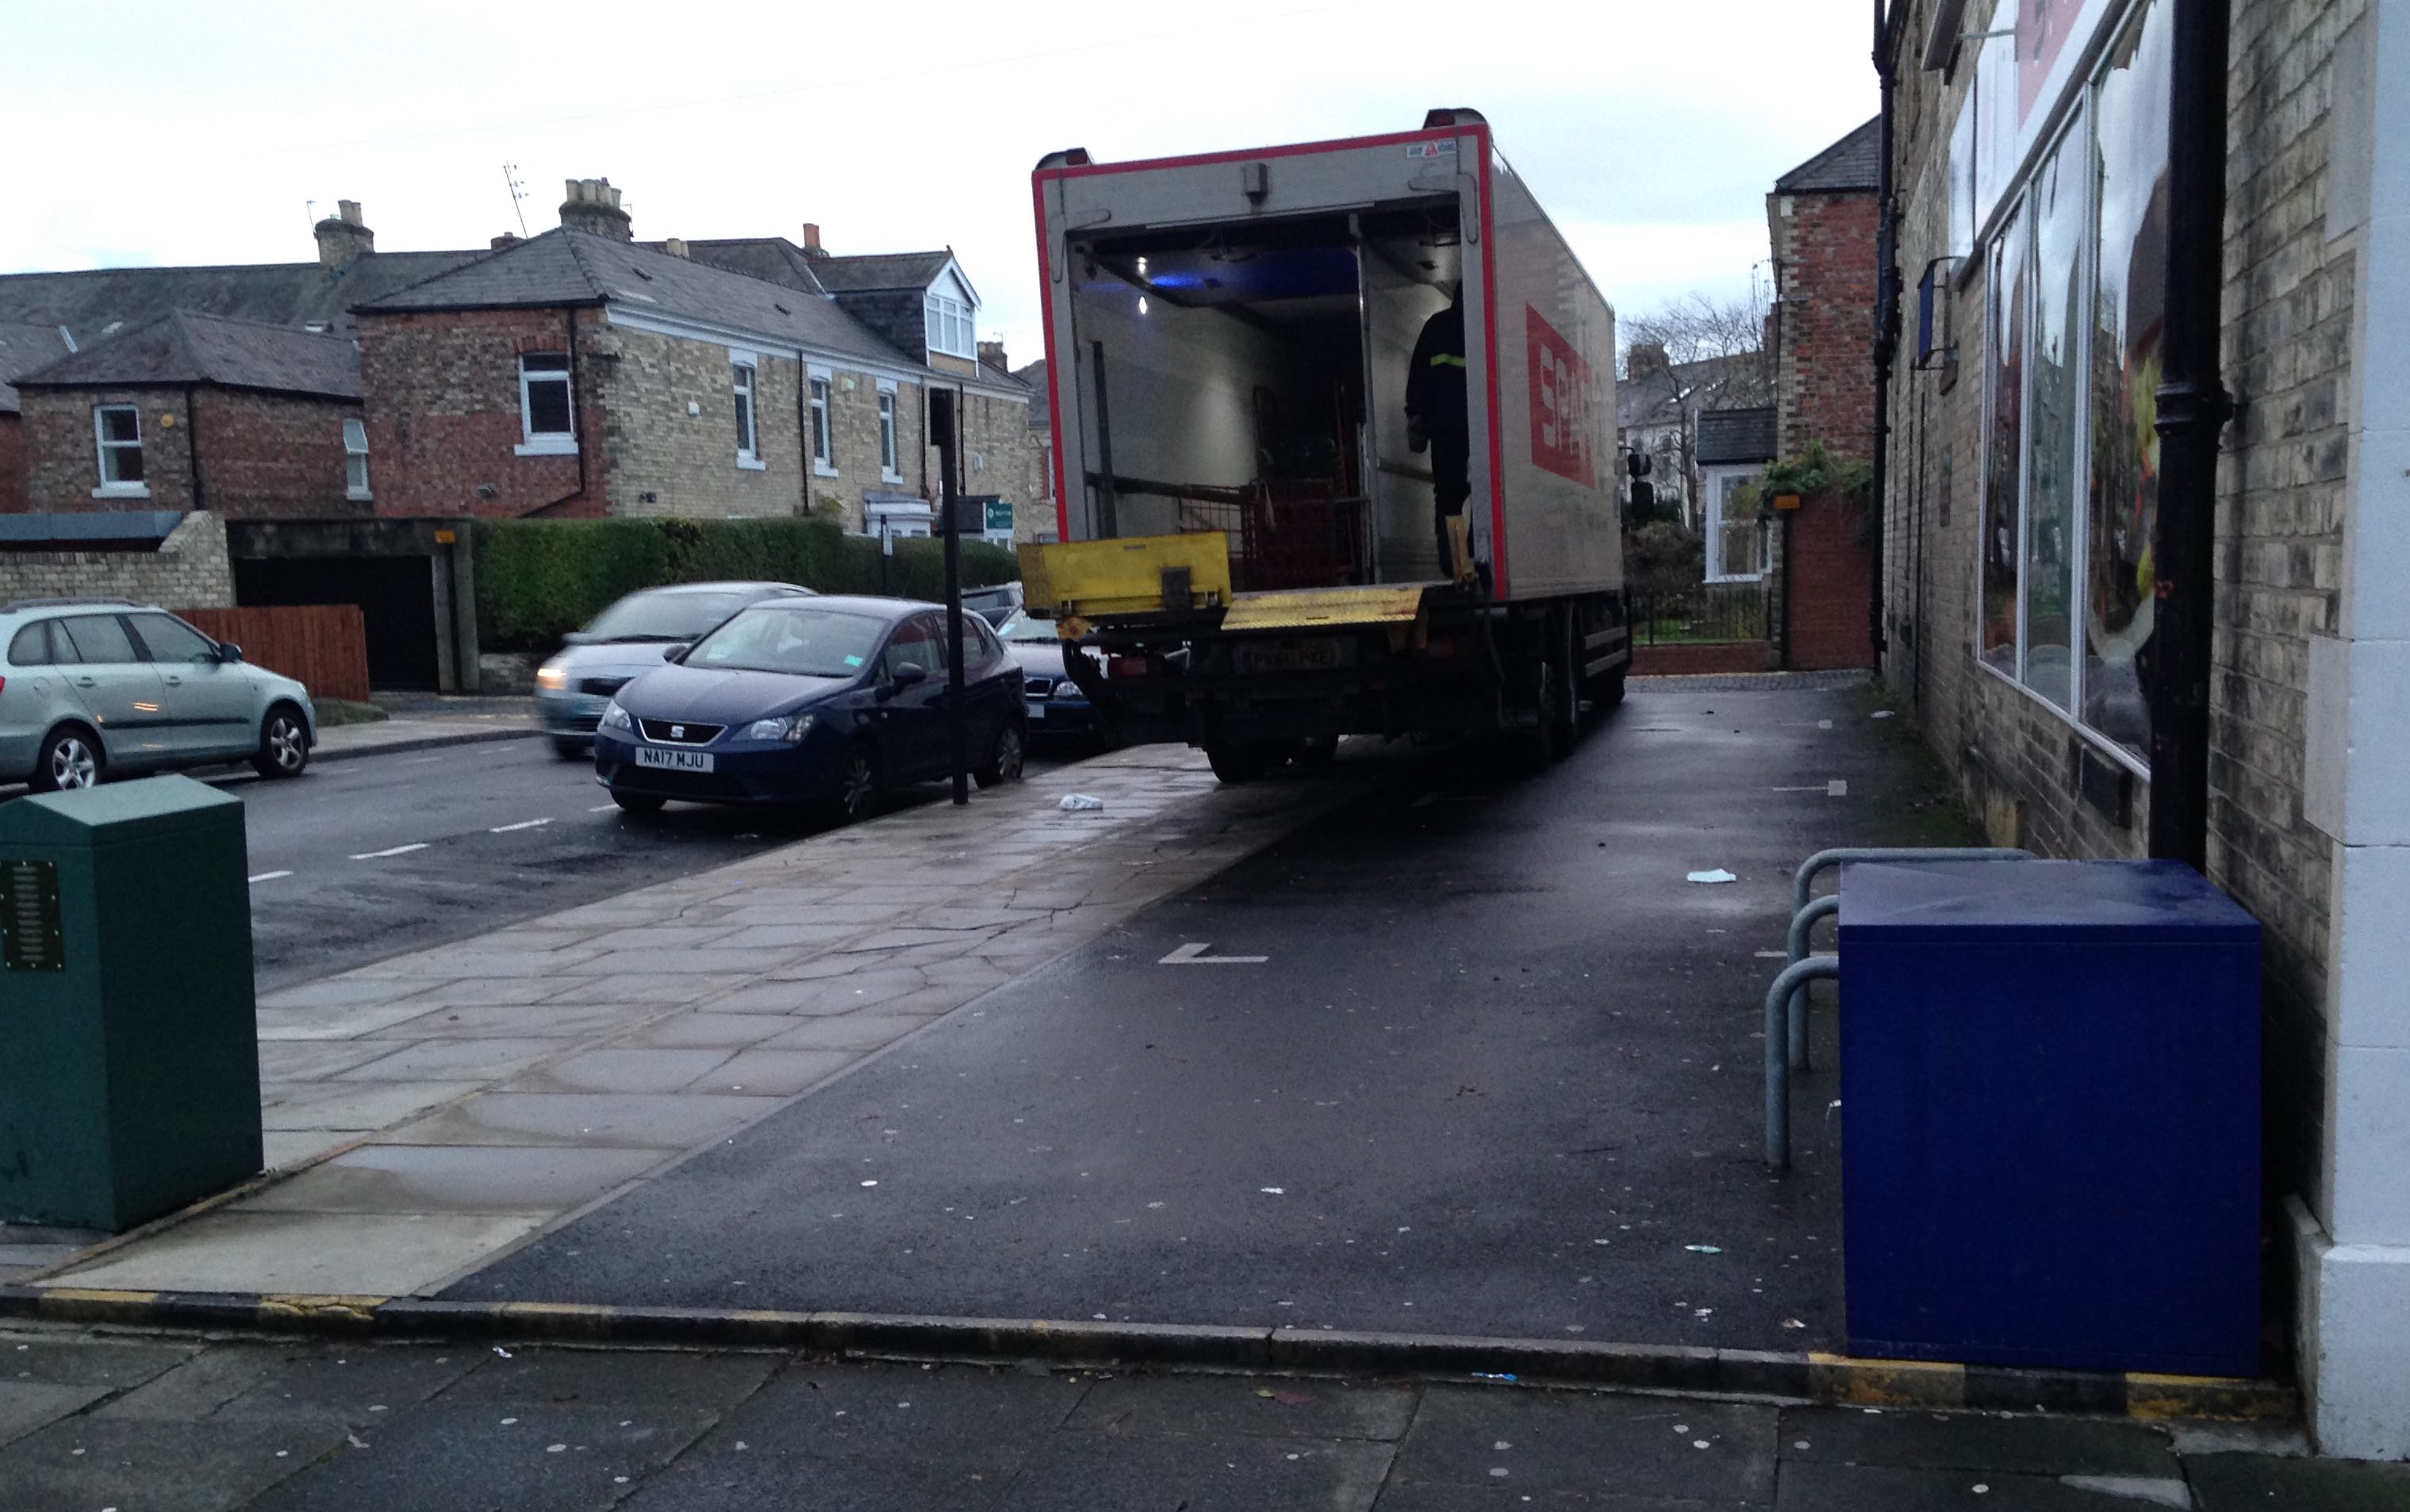 Delivery lorry parked on the parking space and pavement